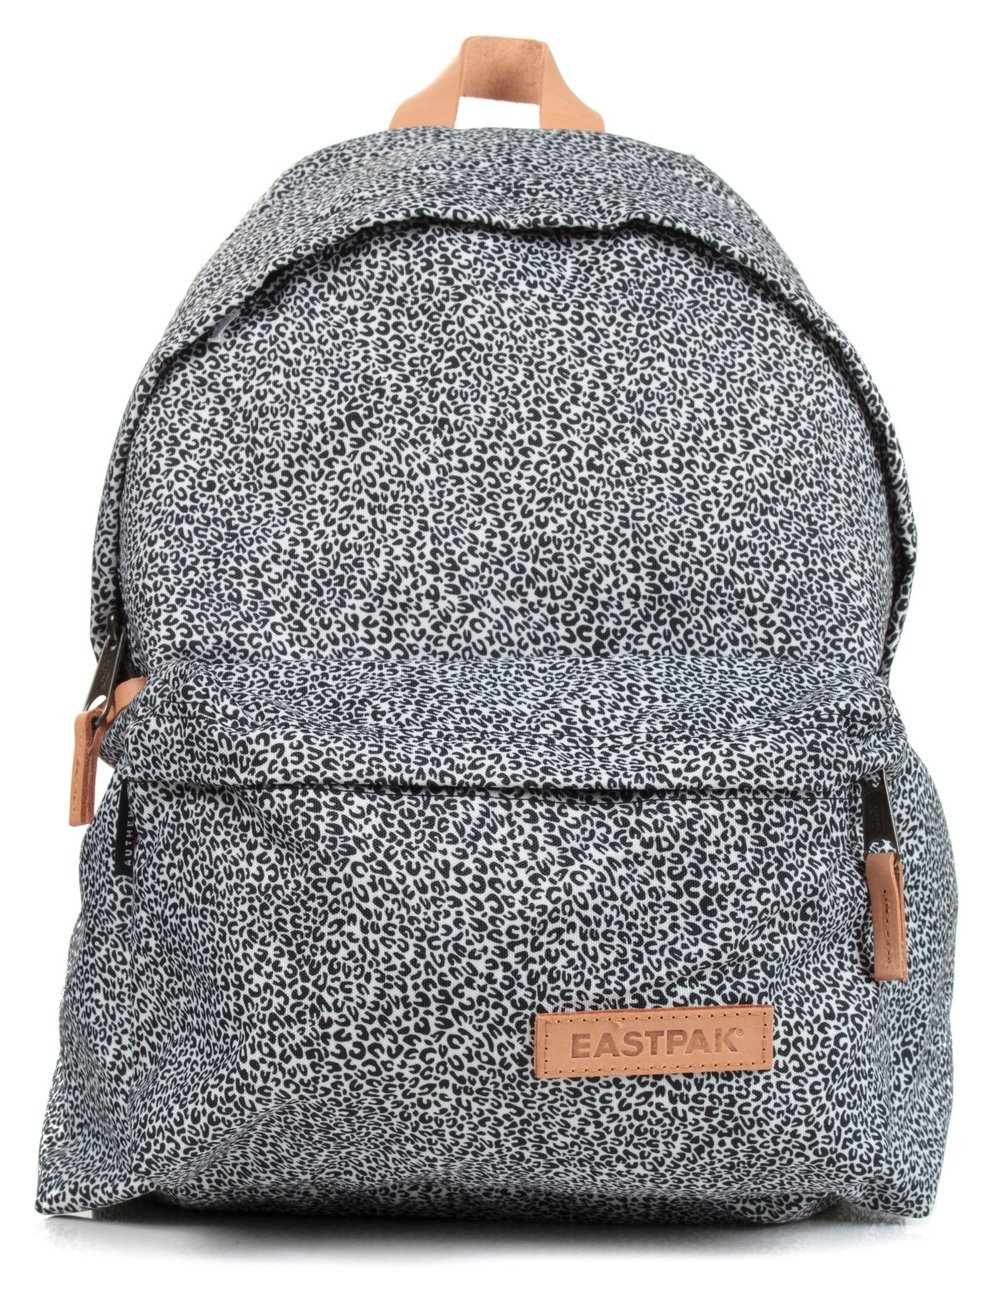 Eastpak Padded Pak R Leather Backpack In Black For Men: Eastpak From Fat Buddha